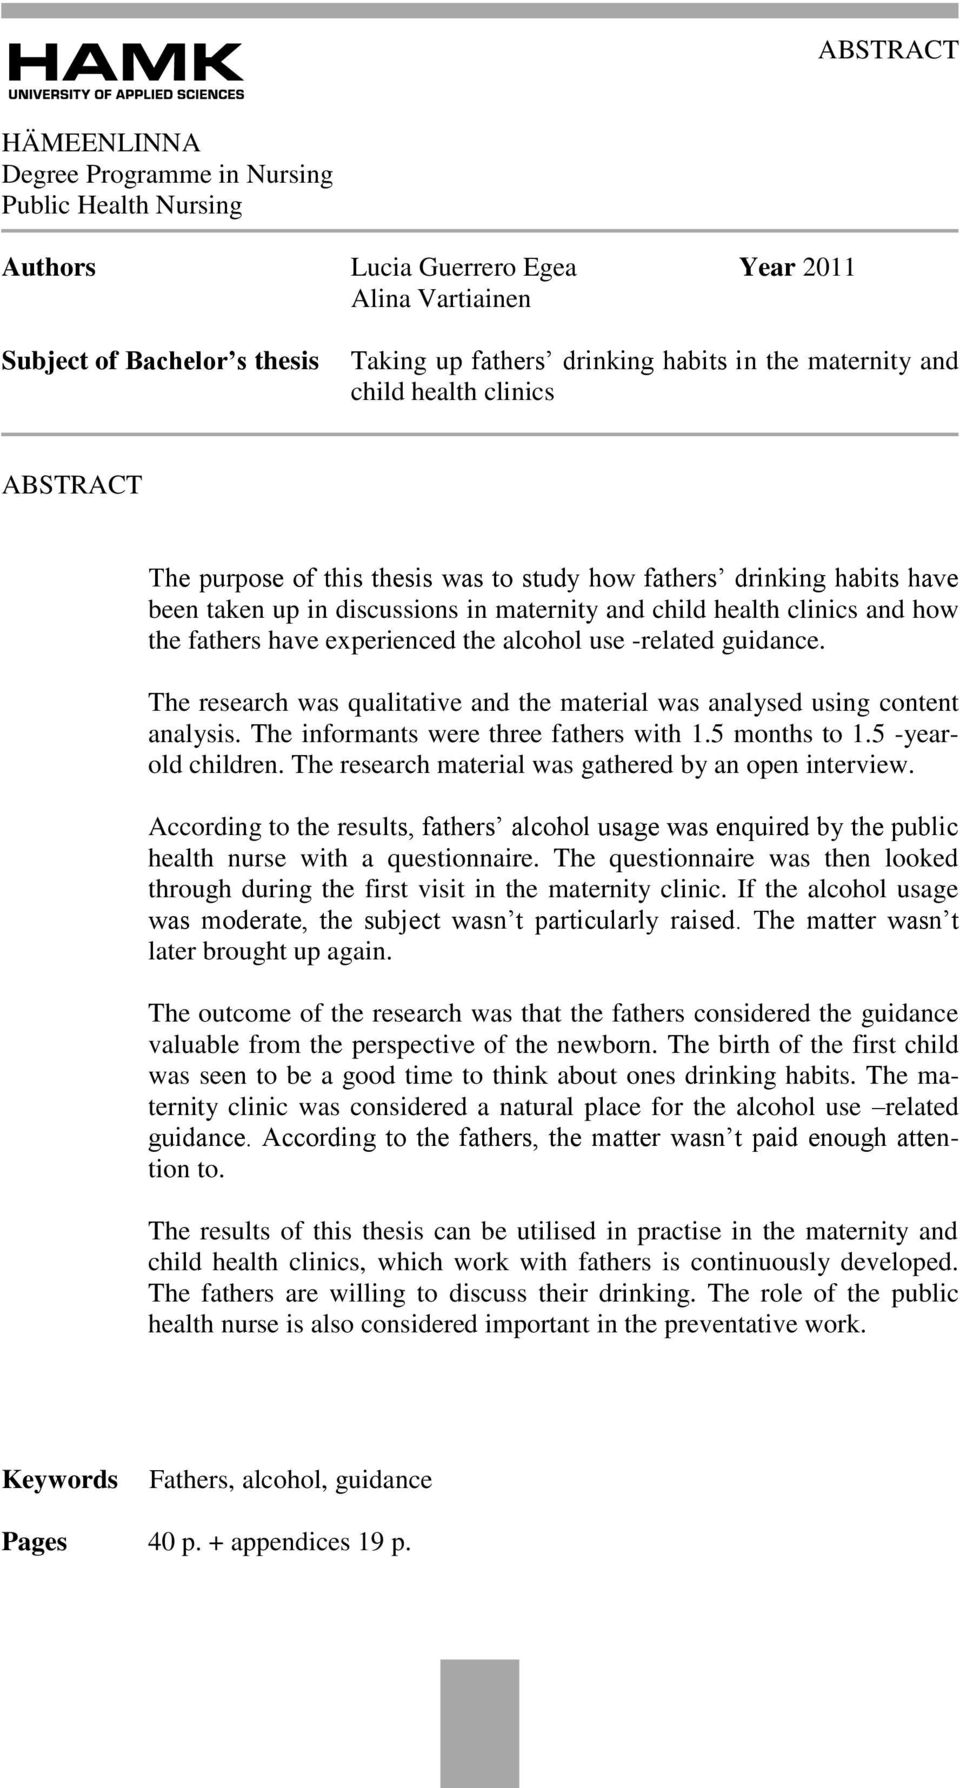 fathers have experienced the alcohol use -related guidance. The research was qualitative and the material was analysed using content analysis. The informants were three fathers with 1.5 months to 1.